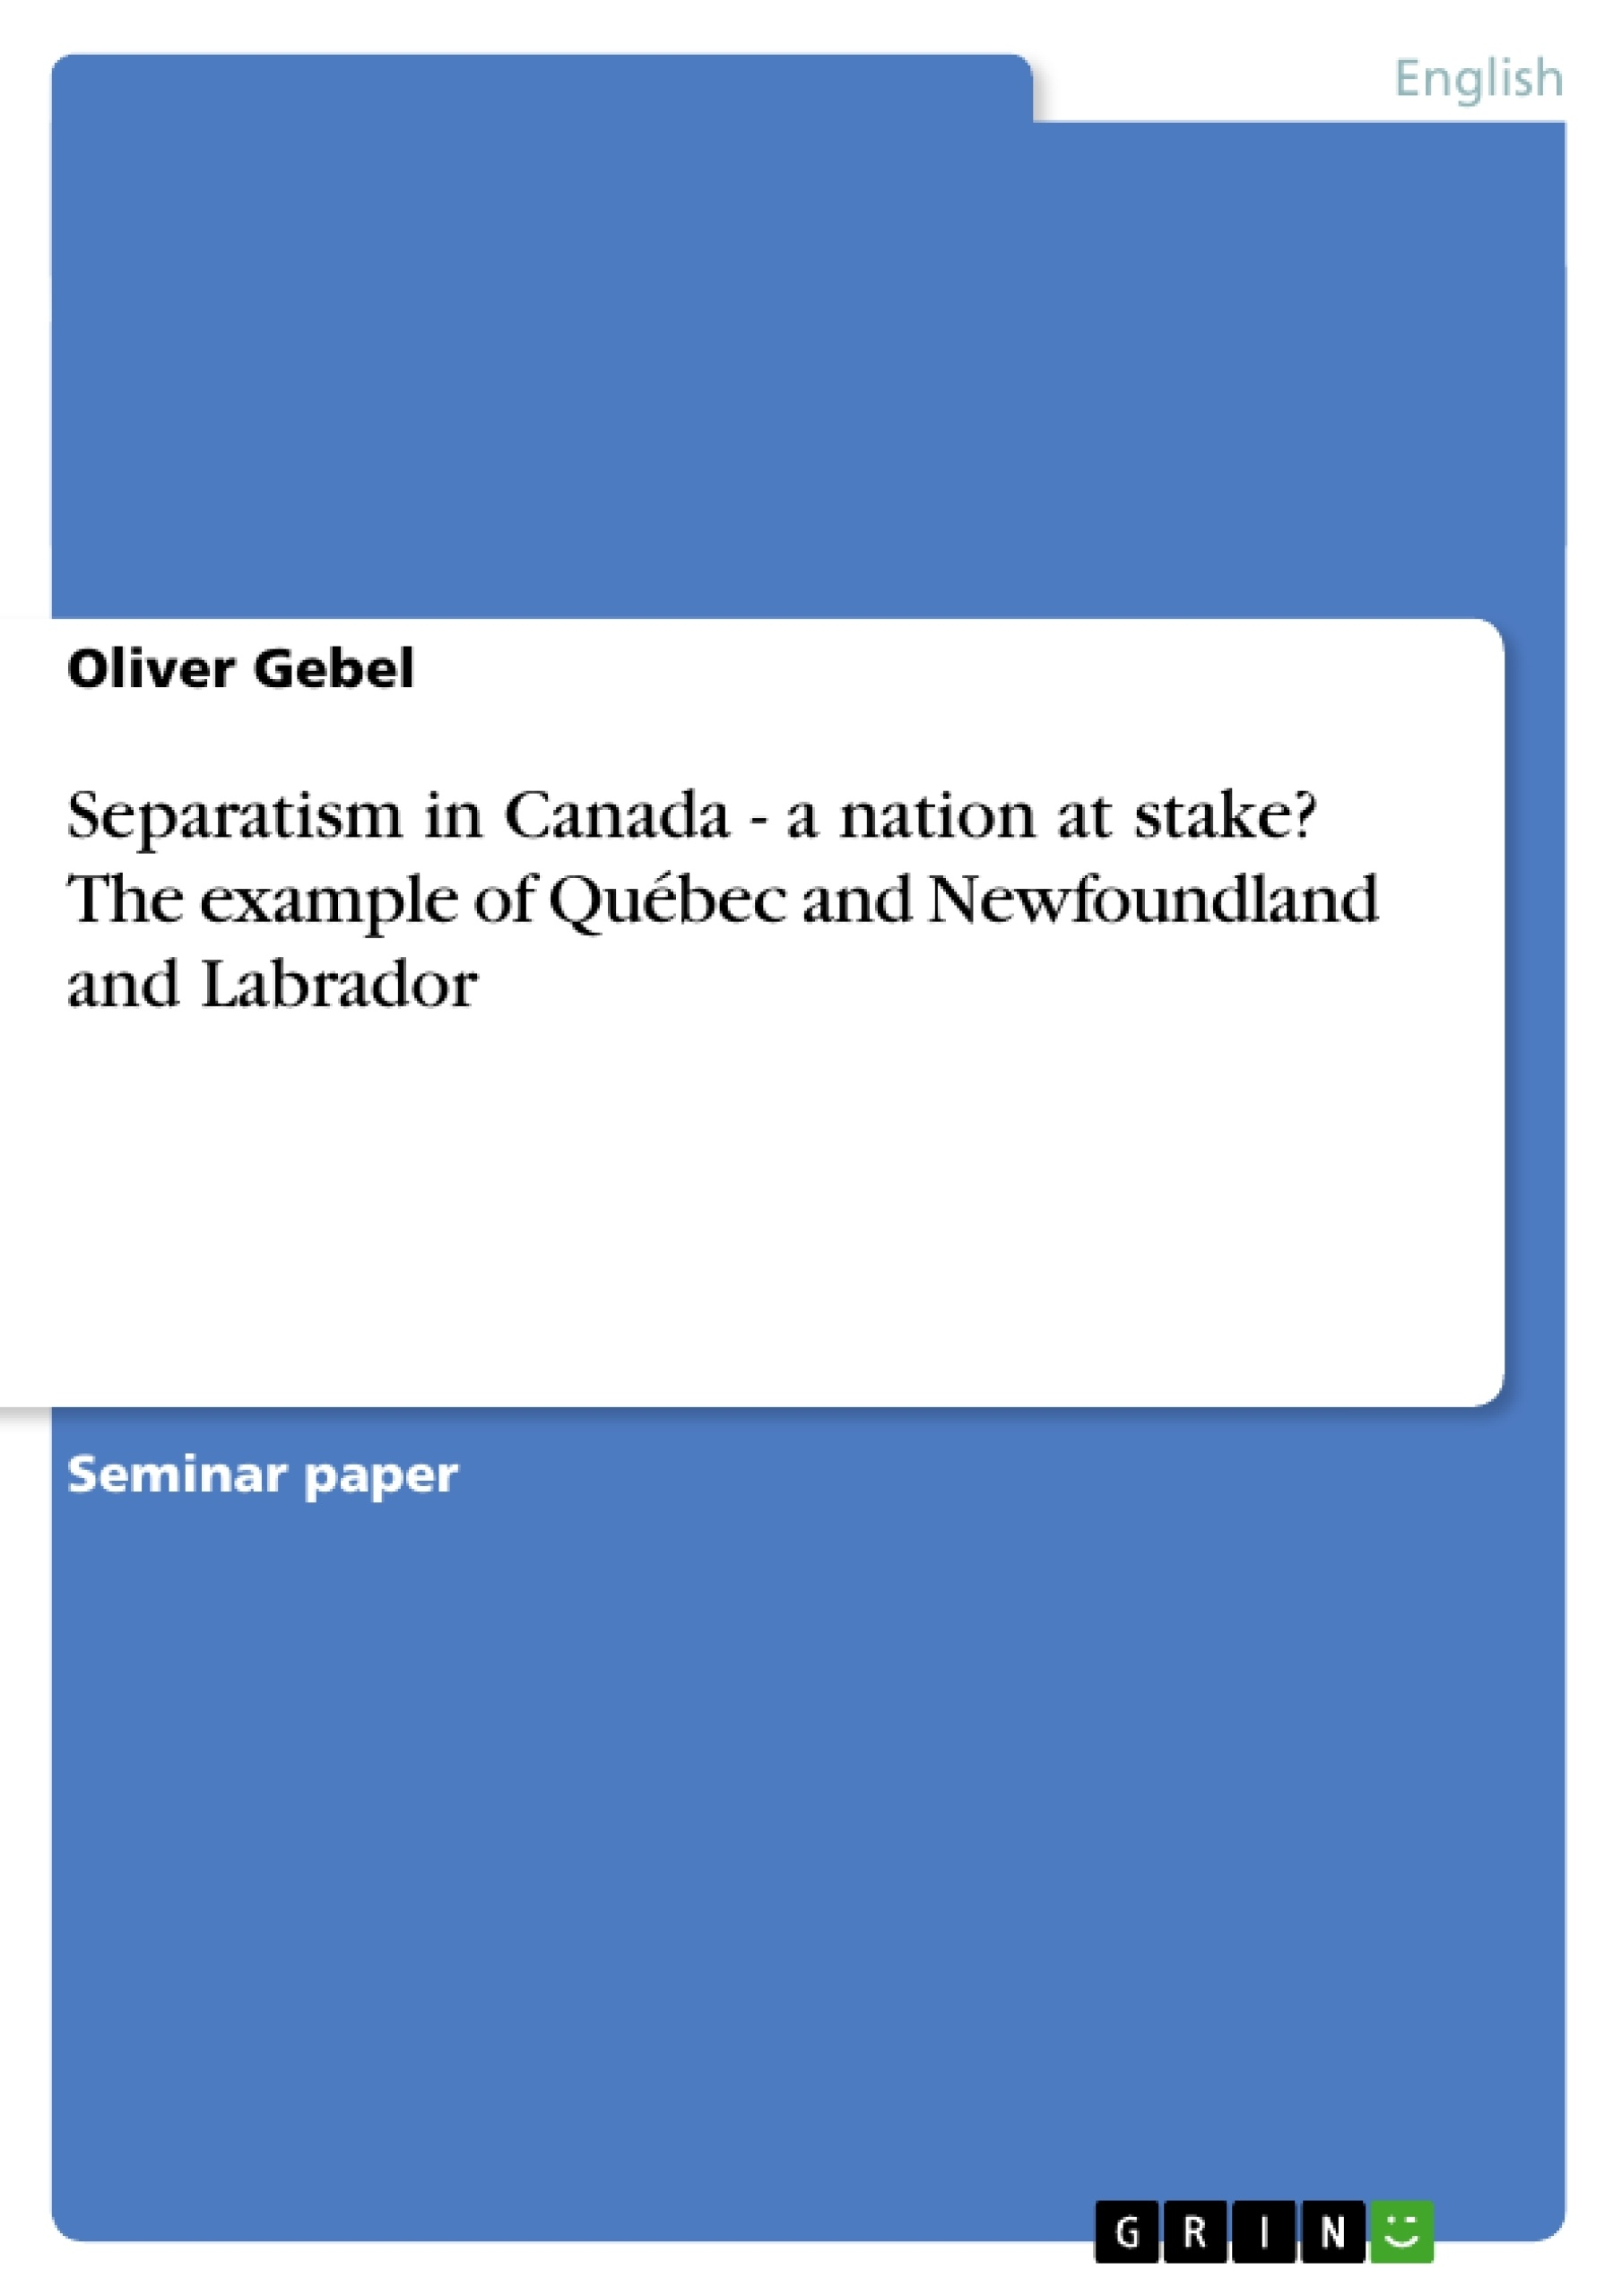 Title: Separatism in Canada - a nation at stake?  The example of Québec and Newfoundland and Labrador